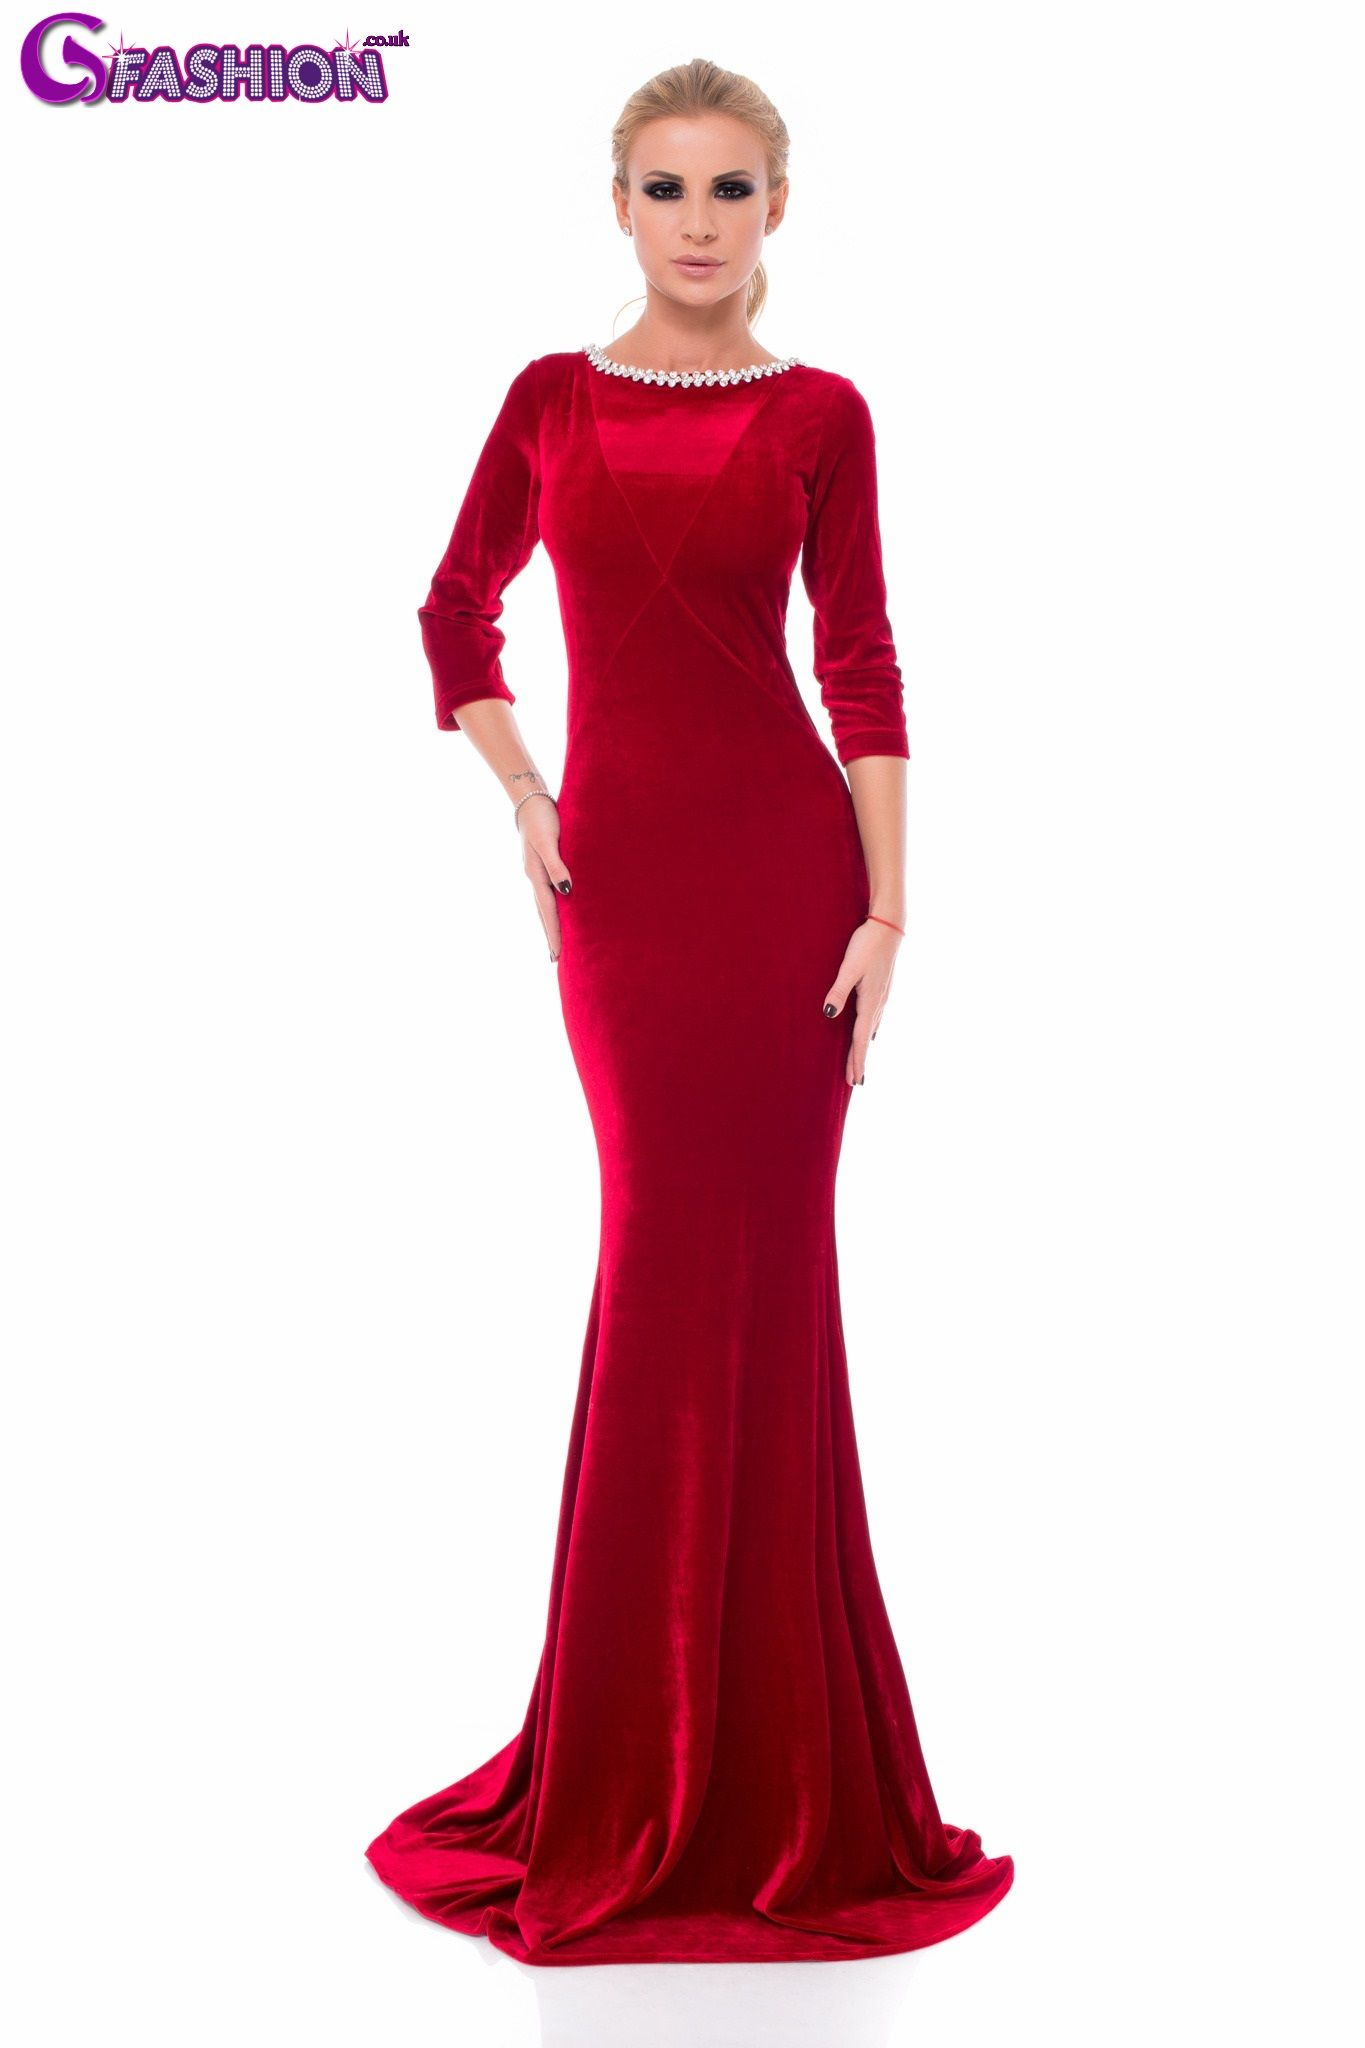 Velvet evening dresses long